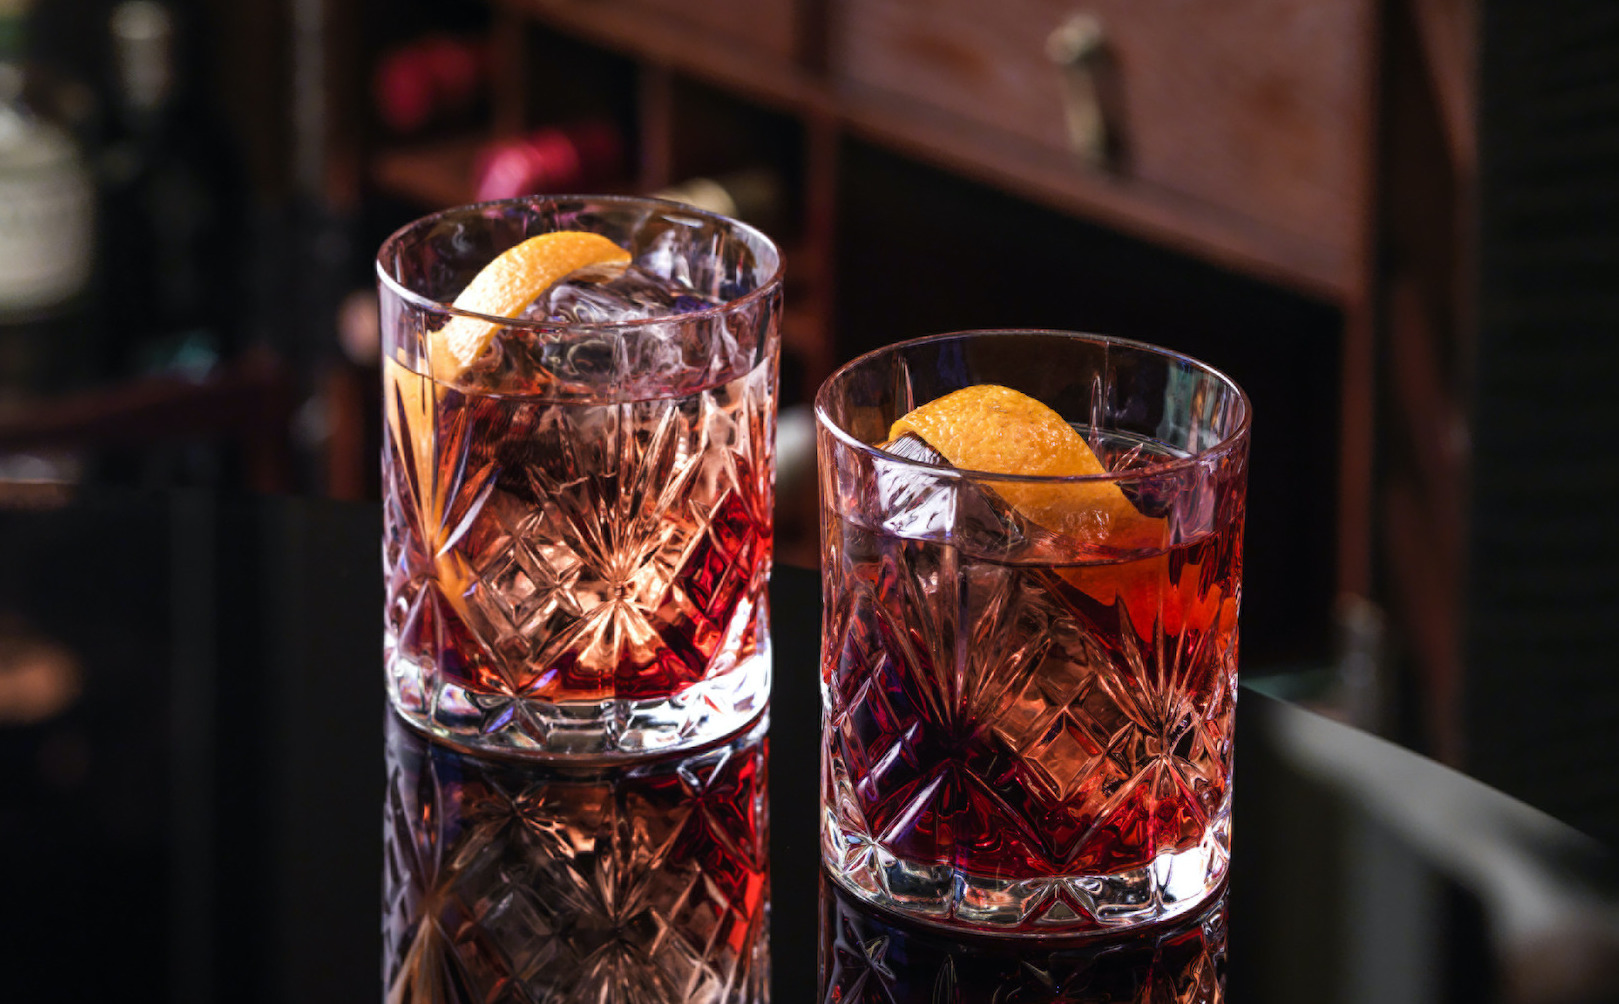 Two glasses of Negroni cocktail